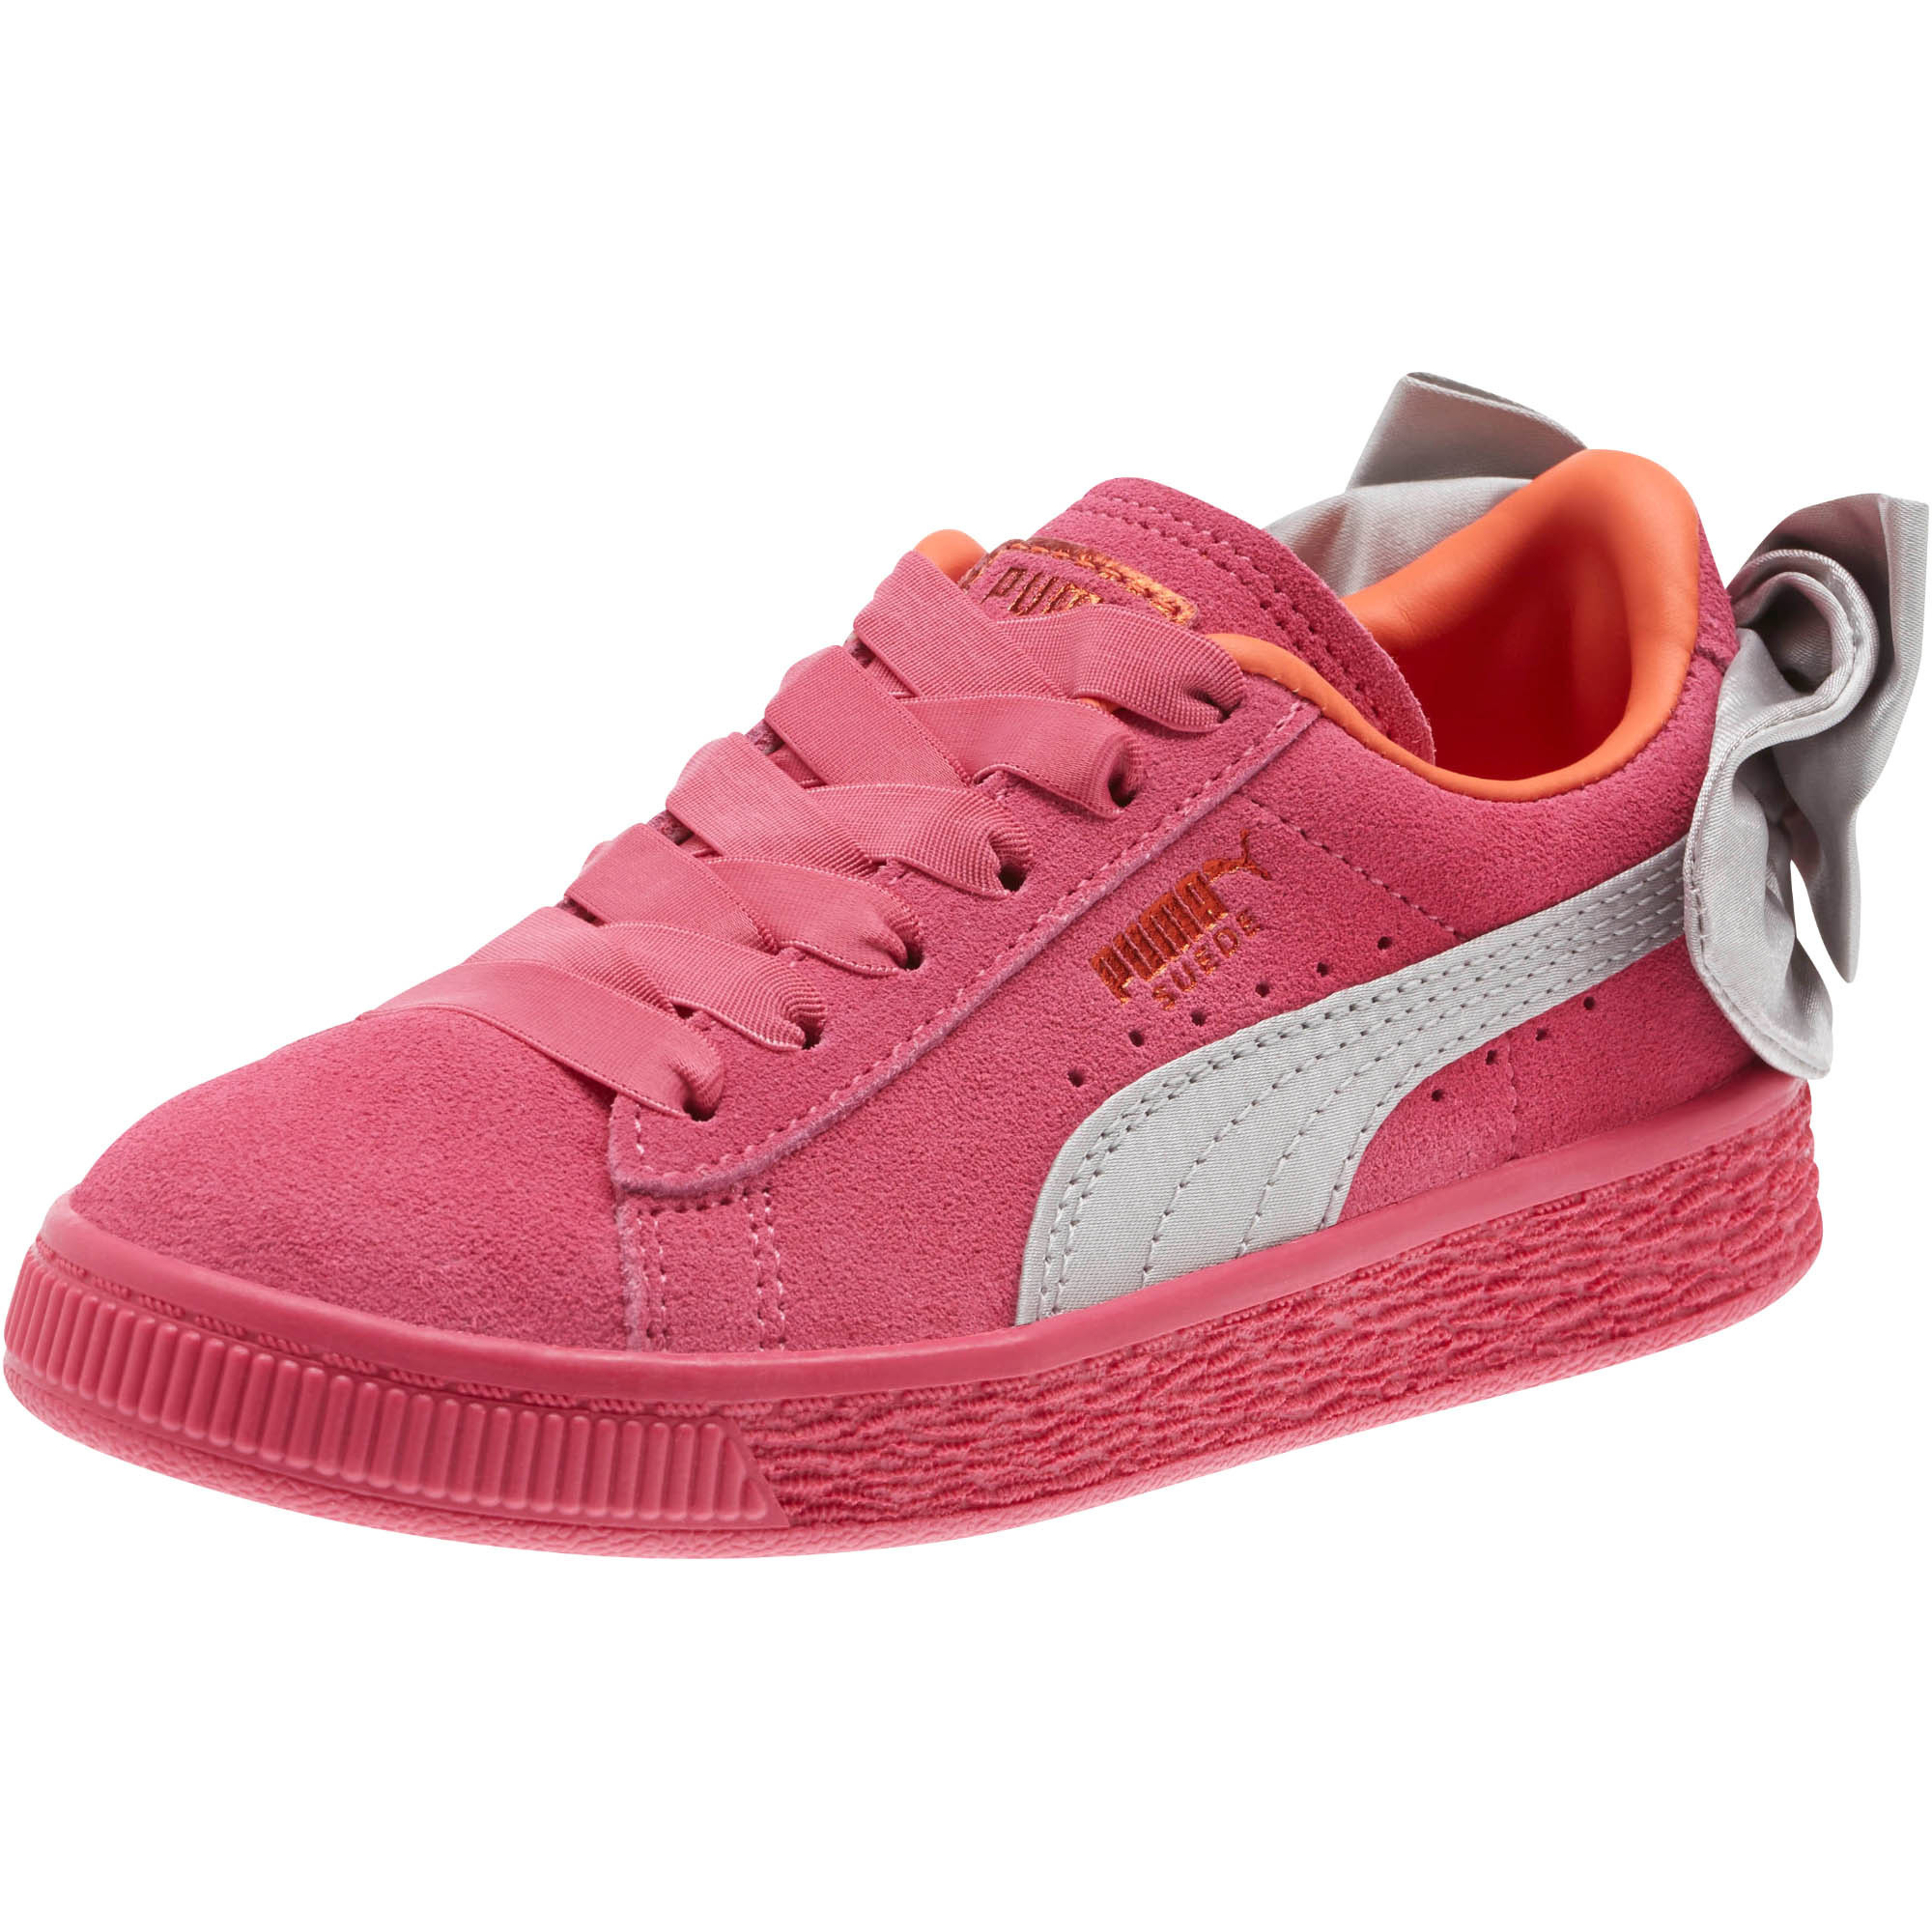 PUMA-Suede-Bow-AC-Little-Kids-039-Shoes-Girls-Shoe-Kids thumbnail 4